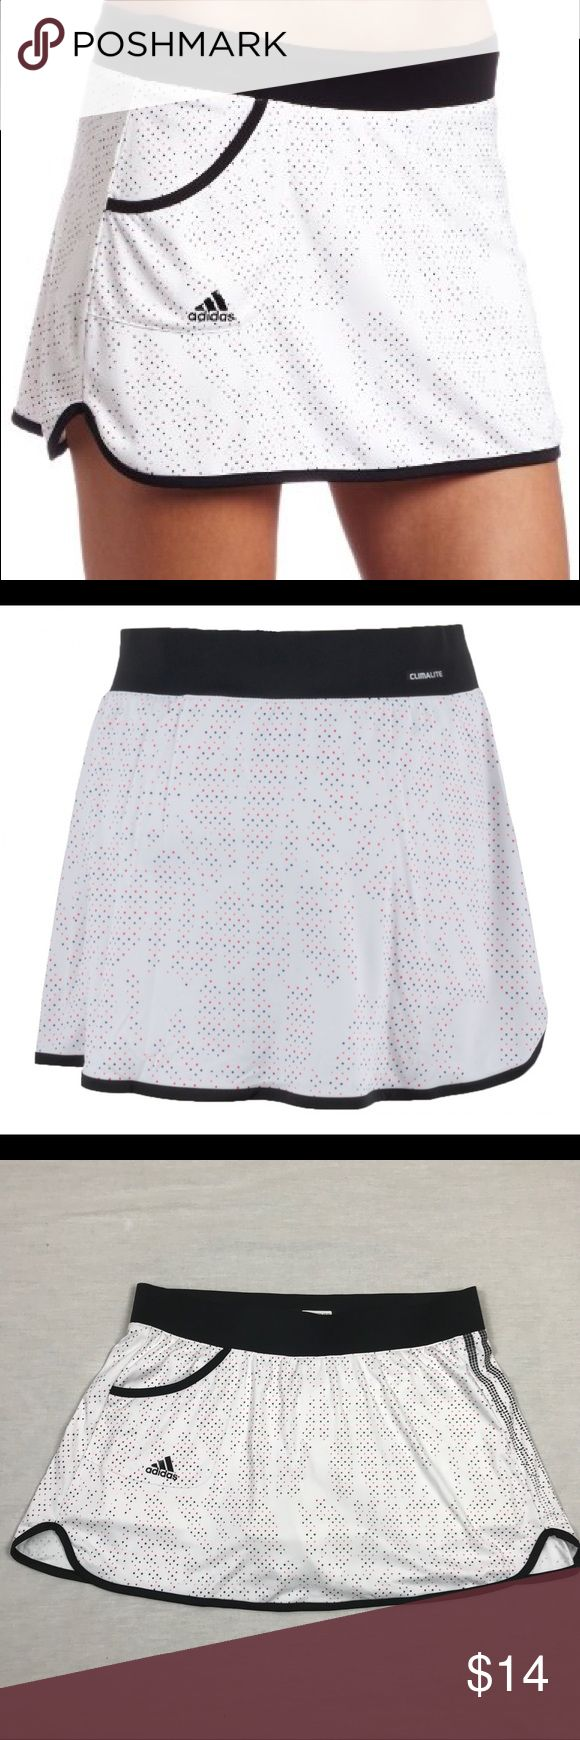 "Adidas Response Tennis Skort White Black ClimaLite This Adidas Response Tennis Skort is part of the Adidas tennis collection.  Size Medium. Machine wash.  The skirt has a comfortable feel and is made with the ClimaLite technology. It has a small pocket on the front side and a built-in short. This skirt has a lovely graphic print on the front and back side.  Specifications: Adidas women's skirt Fabric: 100% polyester Great pre-owned condition!! No flaws. Waist across laying flat 15.5"". Waist…"